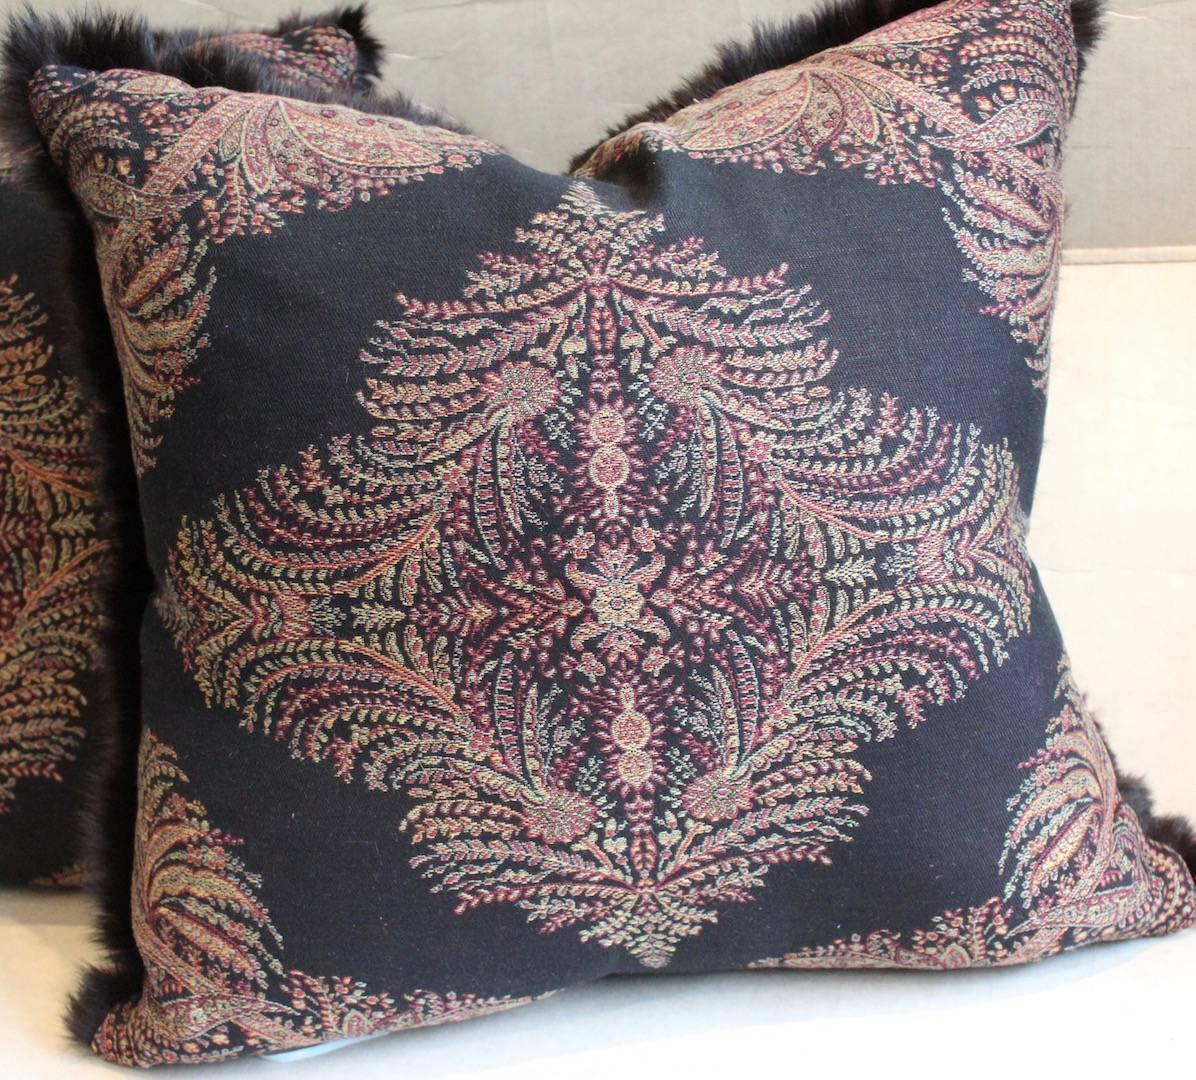 Throw Pillows Made from Ralph Lauren Wool Paisley and Real Rabbit Fur Trim at 1stdibs